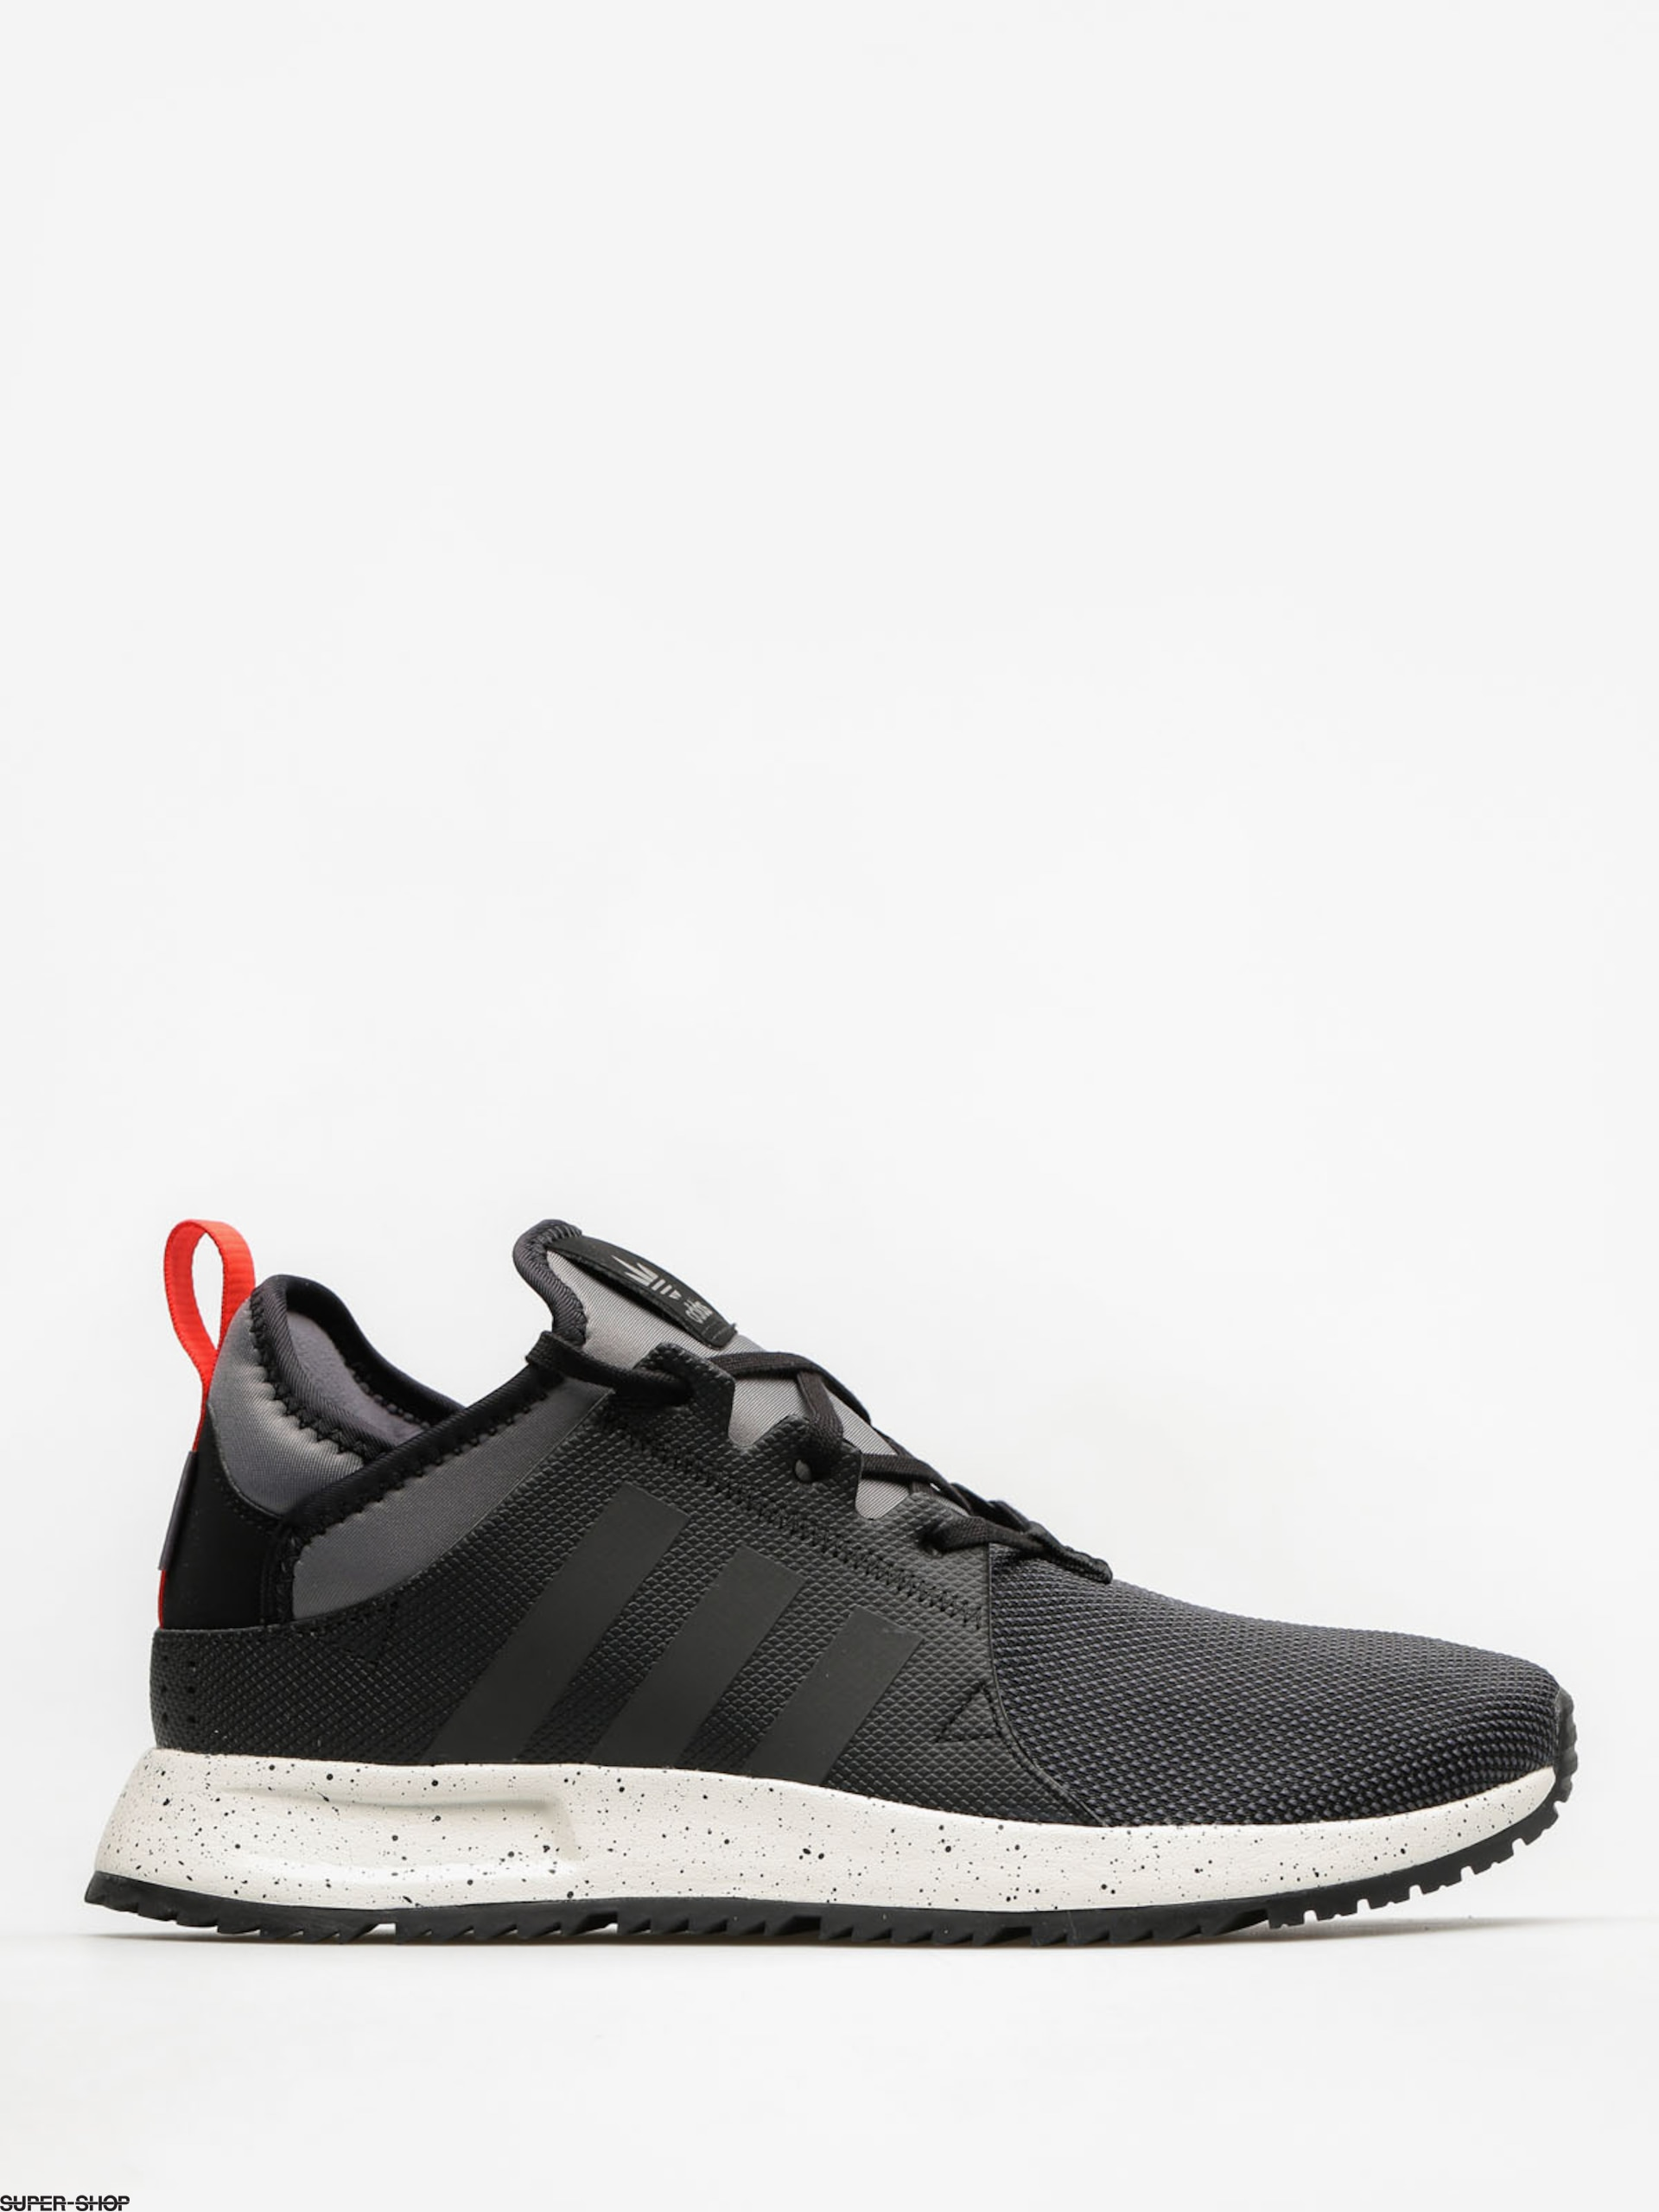 adidas Shoes X Plr Sneakerboot